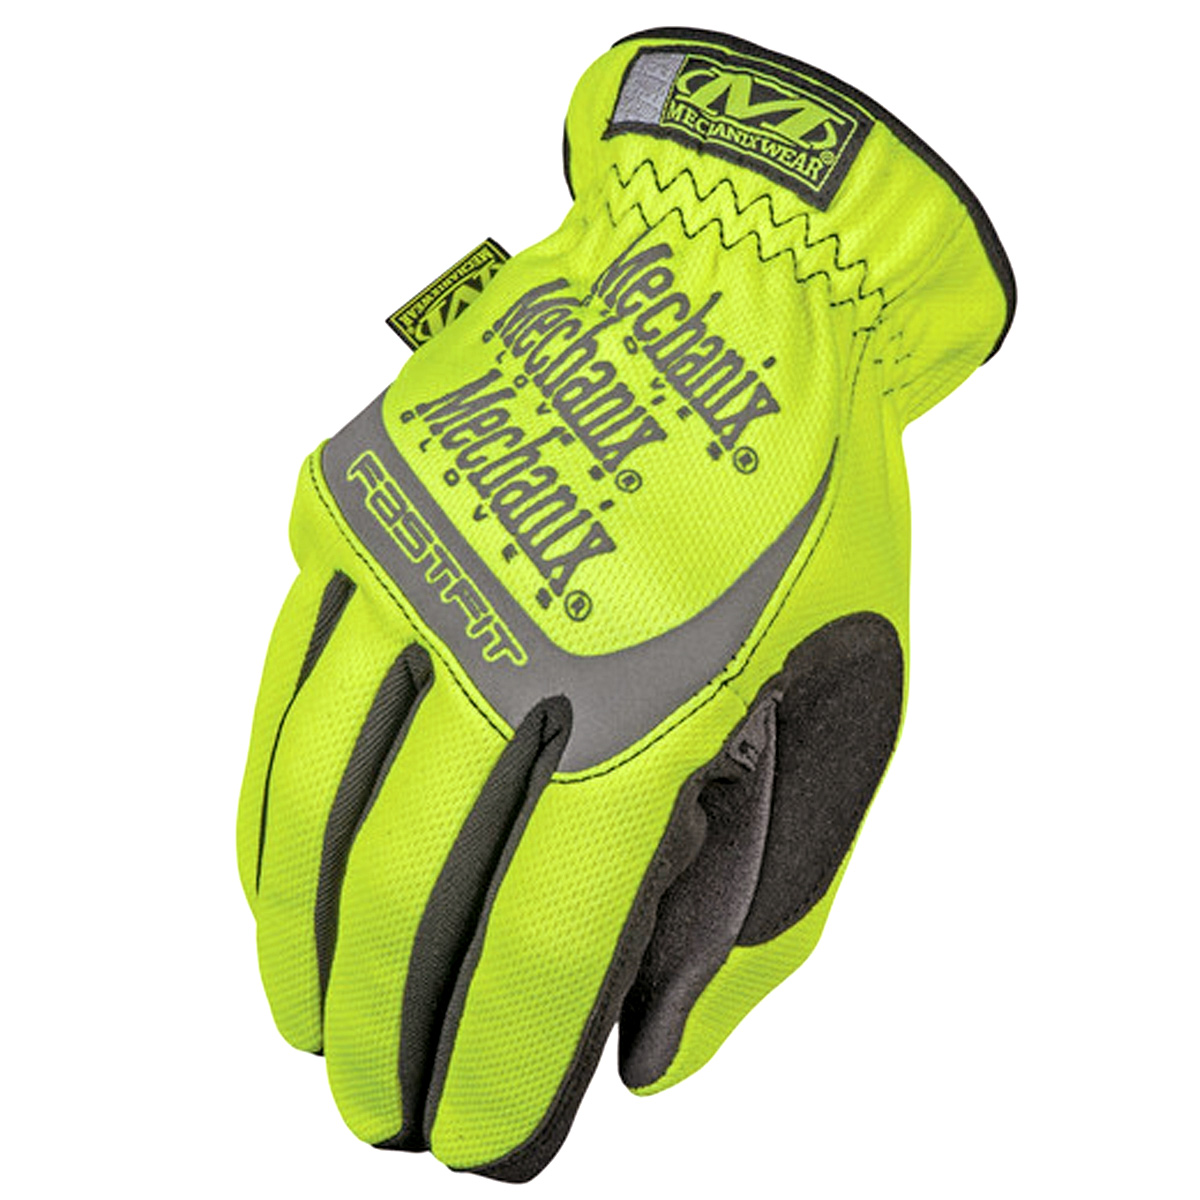 Gloves HI-VIZ FAST FIT 91 HiViz yellow 12/XXL